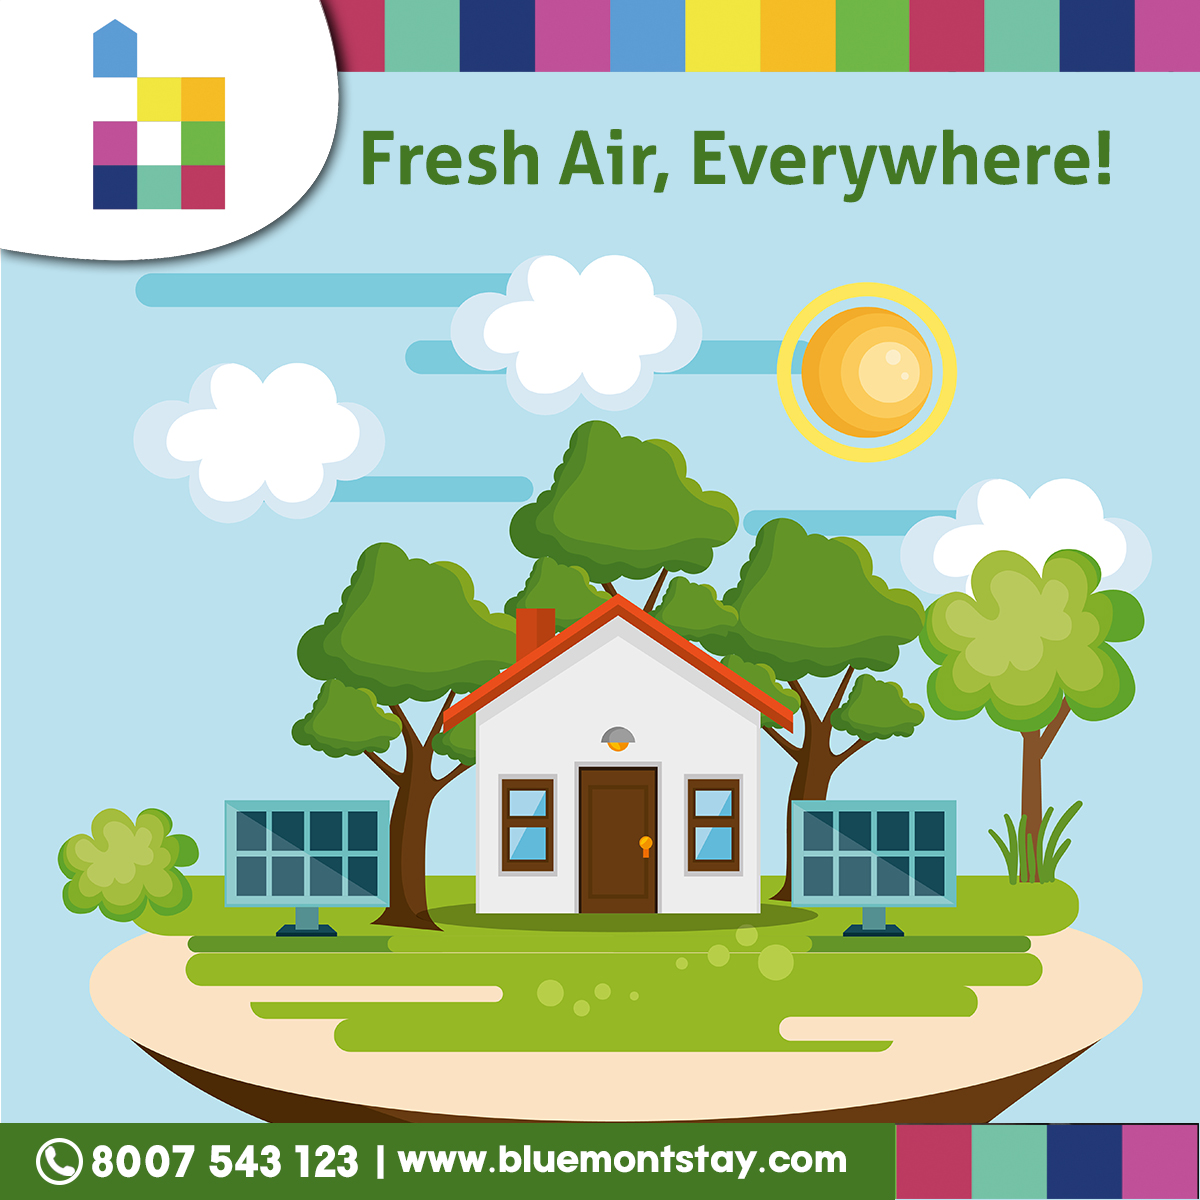 """A breath of fresh air is a great thing to take. Fresh air is everywhere at Bluemont Stay.  """"Visit Us: http://www.bluemontstay.com : +91 8007-543-123""""  #bluemontstay #luxuryapartment #betterliving #happystay #apartmentliving #propertyrental #staywithus #besthospitality #freshairpic.twitter.com/UtKgfTFS1t"""